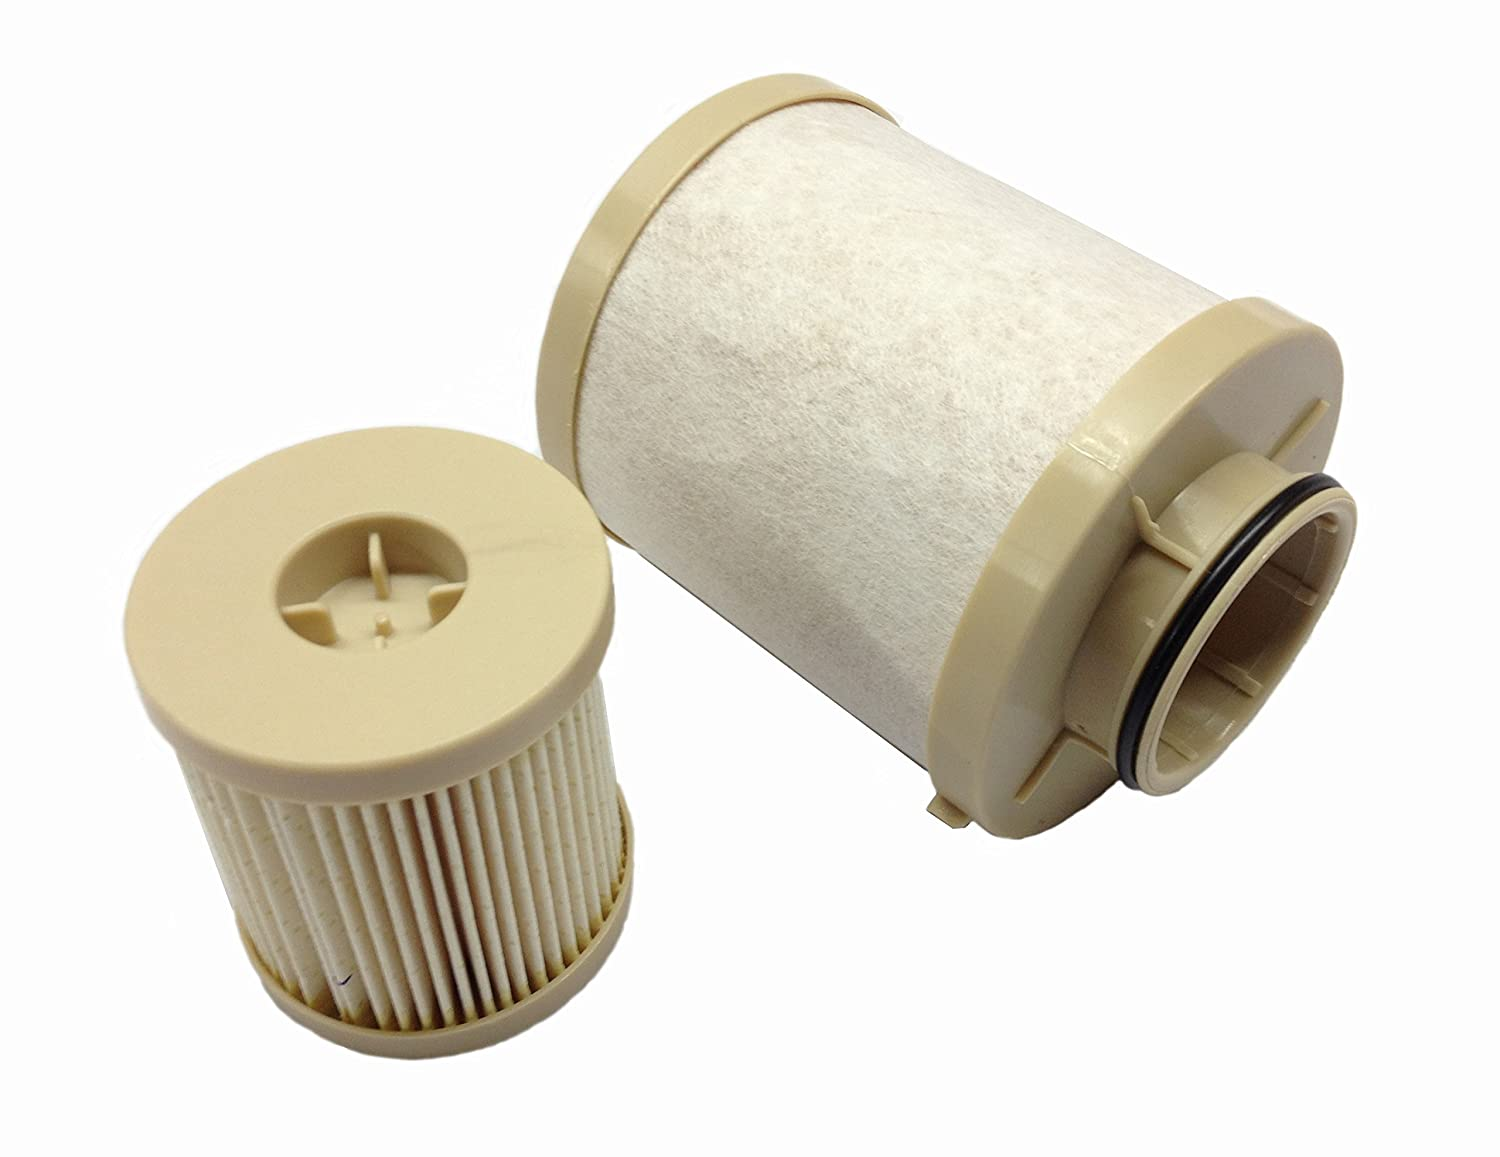 Ford 60l 2003 2007 Updated 4616 Diesel Fuel Filter Pack Includes F 250 Lower Lifter Pump